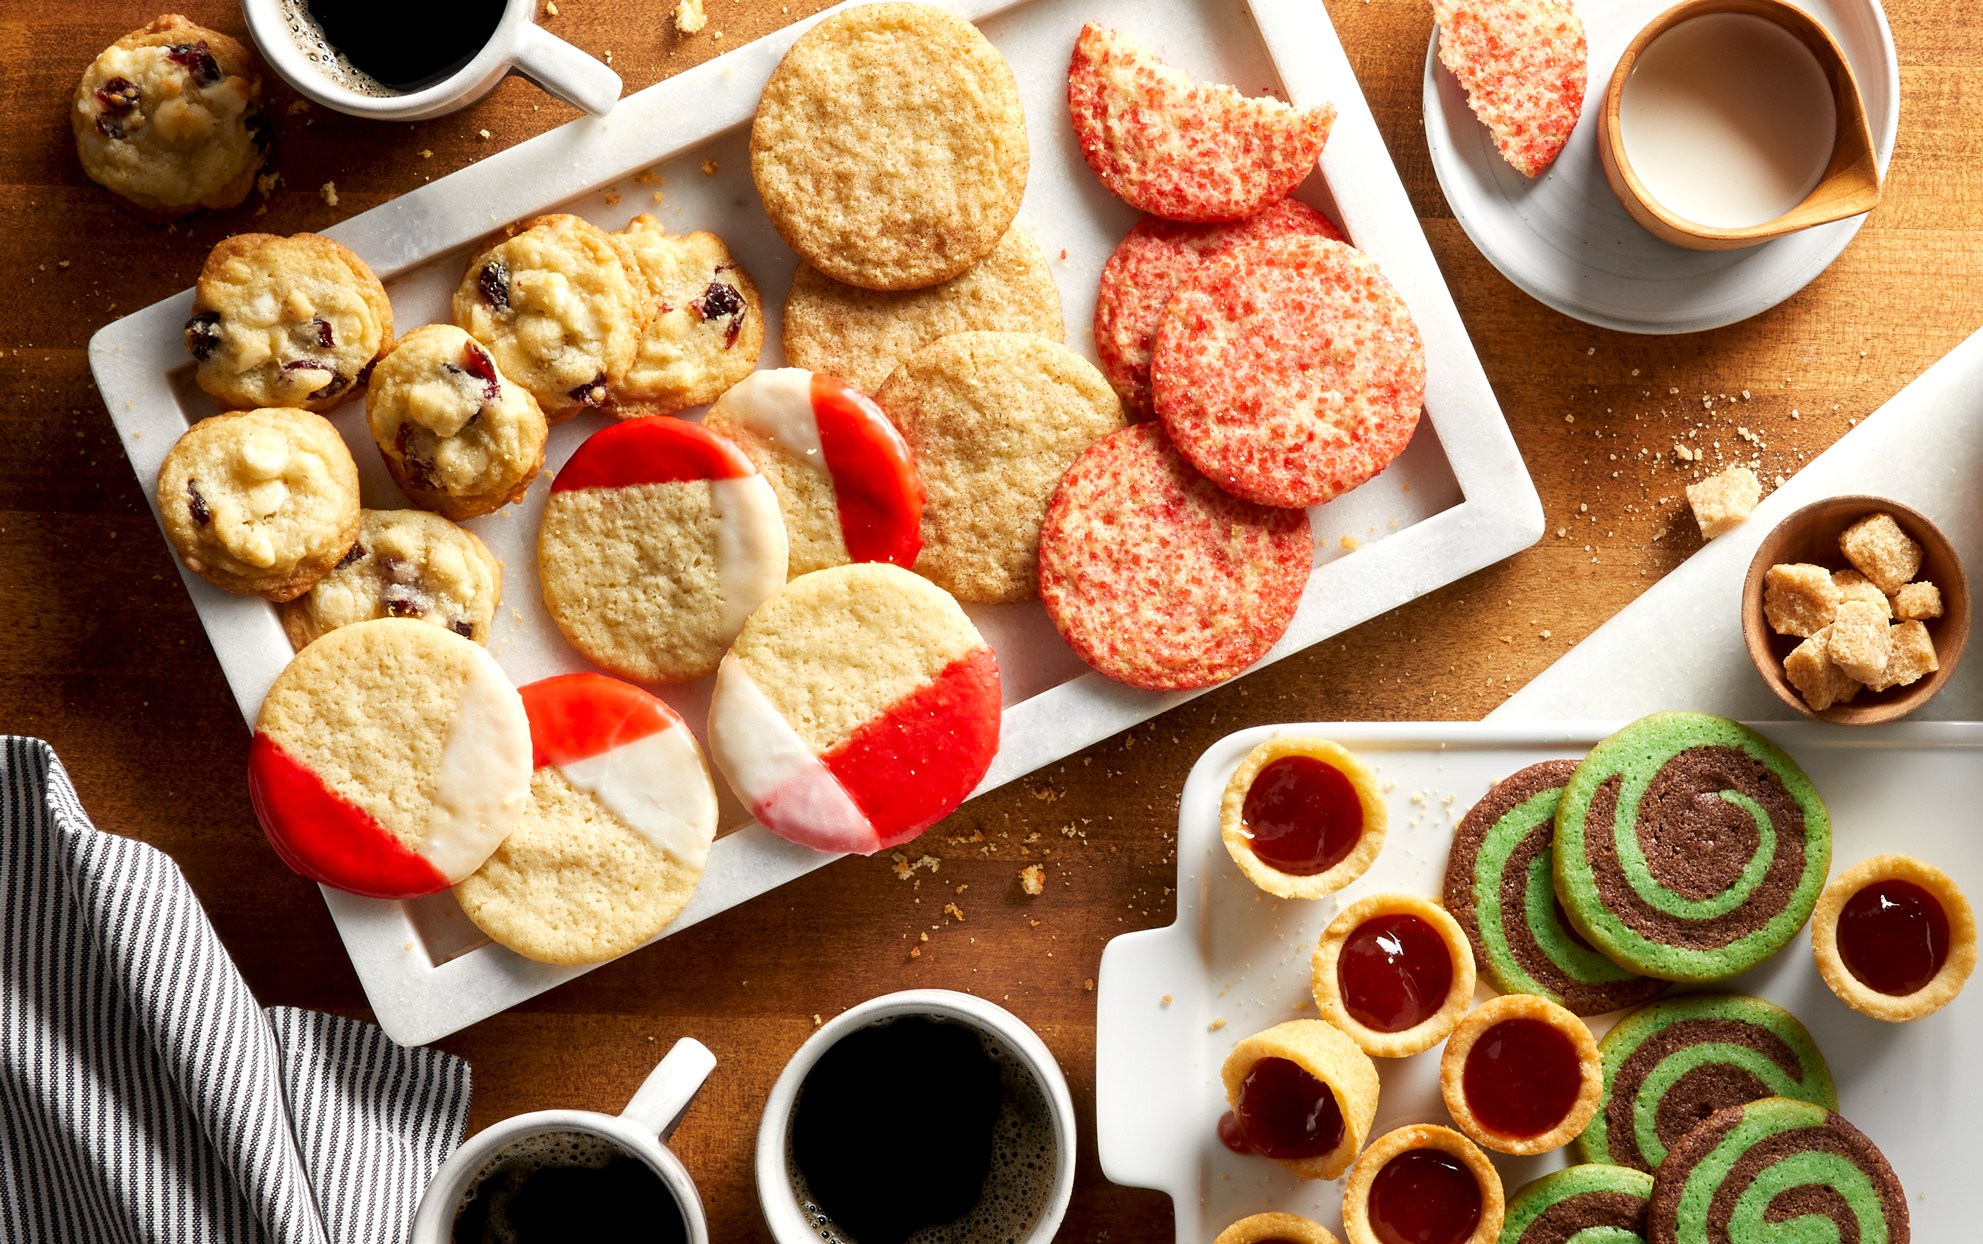 Multiple types of cookies on a wooden surface with coffee